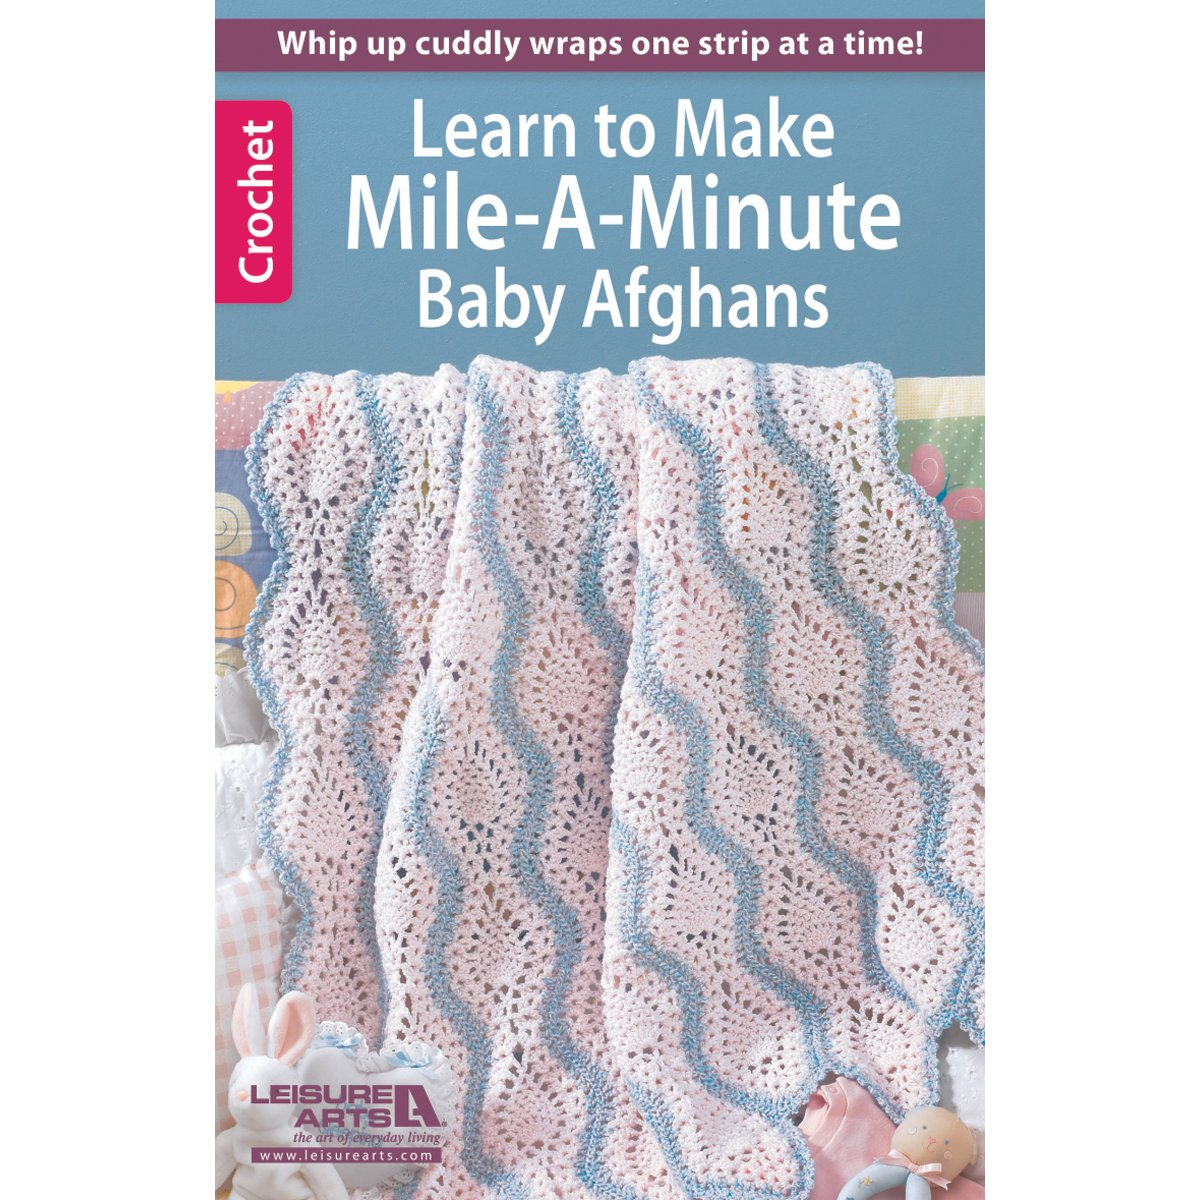 Amazon.com: LEISURE ARTS LA-75473 Crochet Mile a Minute Baby Afghans Book:  Arts, Crafts & Sewing